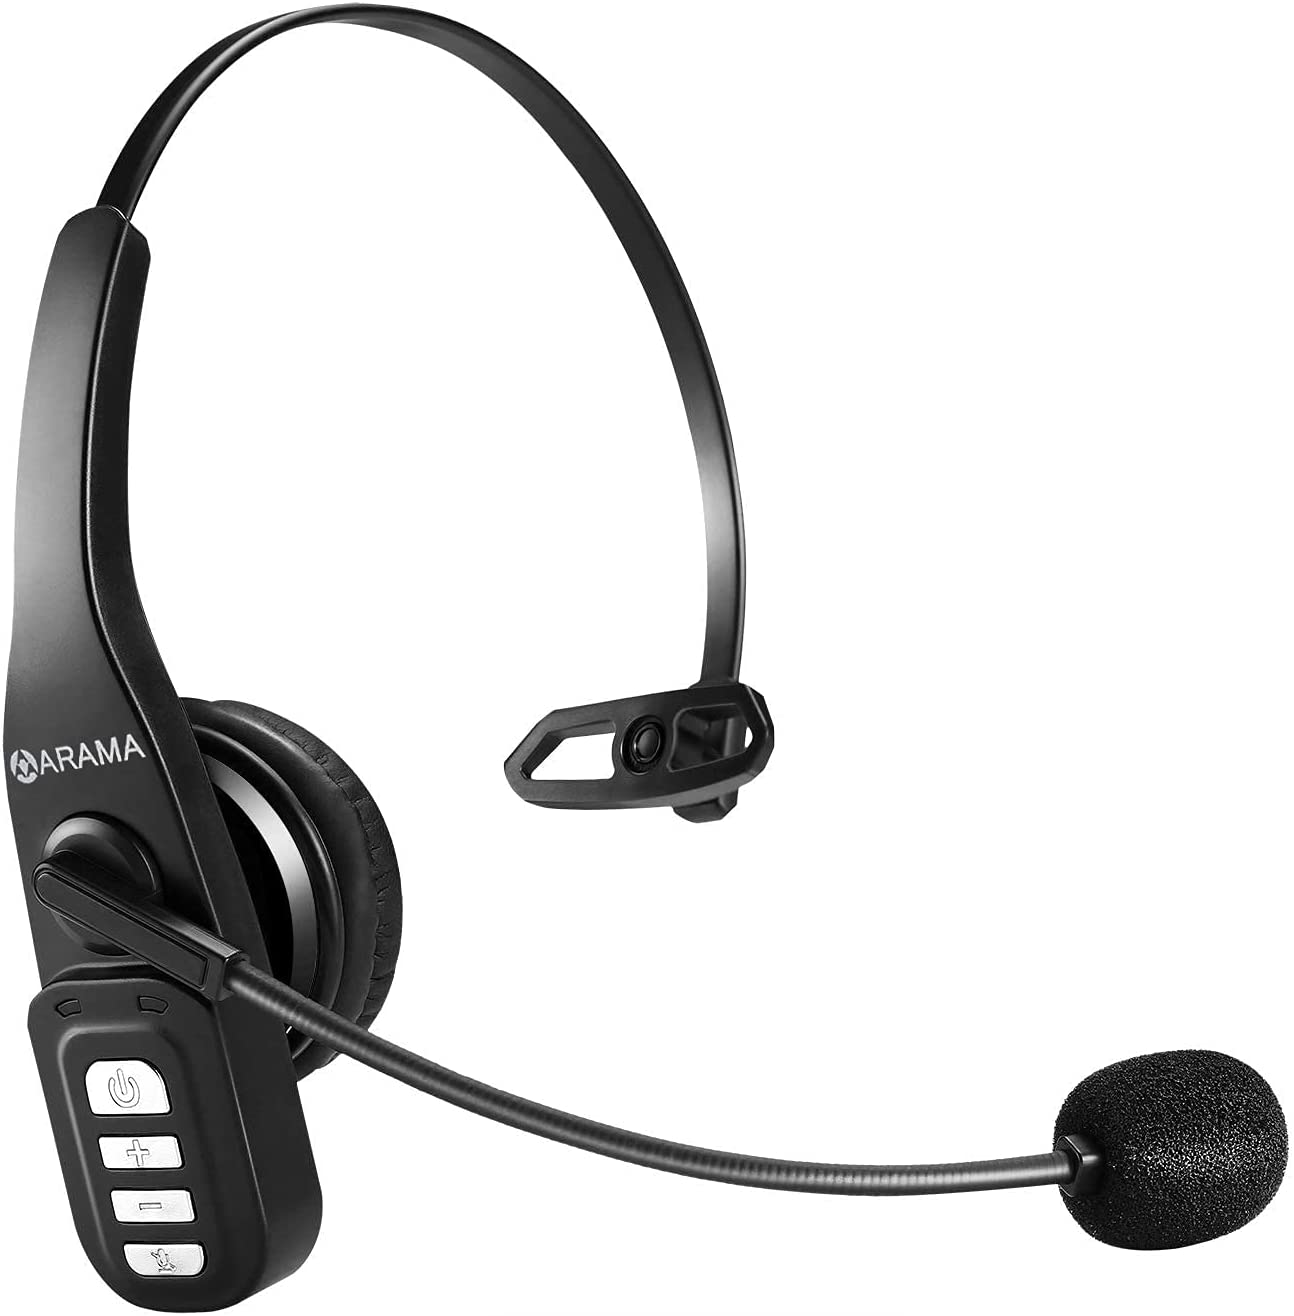 Trucker Bluetooth Headset 5.0 with Microphone Noise Cancelling Wireless Headset On Ear Headphone 22H for Cell Phones Laptop Trucker Home Office Online Class Call Center Skype Zoom